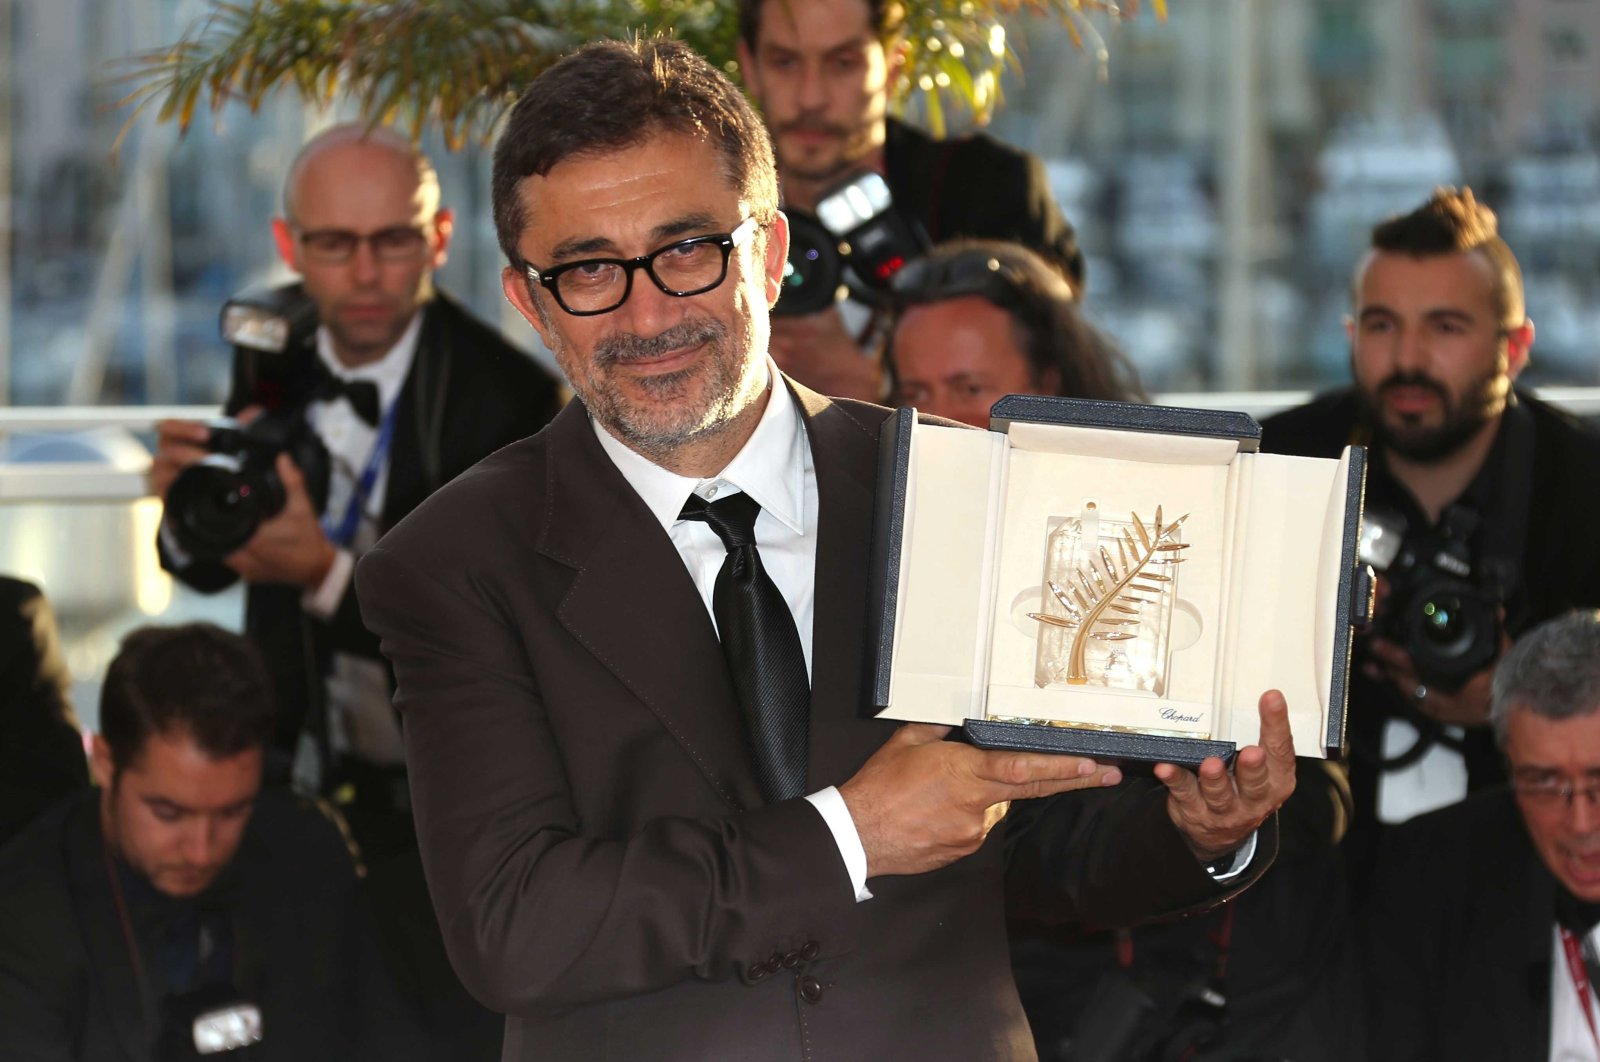 """Director Nuri Bilge Ceylan poses with the palme d'or award for the film """"Kış Uykusu"""" (""""Winter Sleep"""") during a photo call following the awards ceremony at the 67th Cannes Film Festival, Cannes, southern France, May 24, 2014. (AP Photo)"""